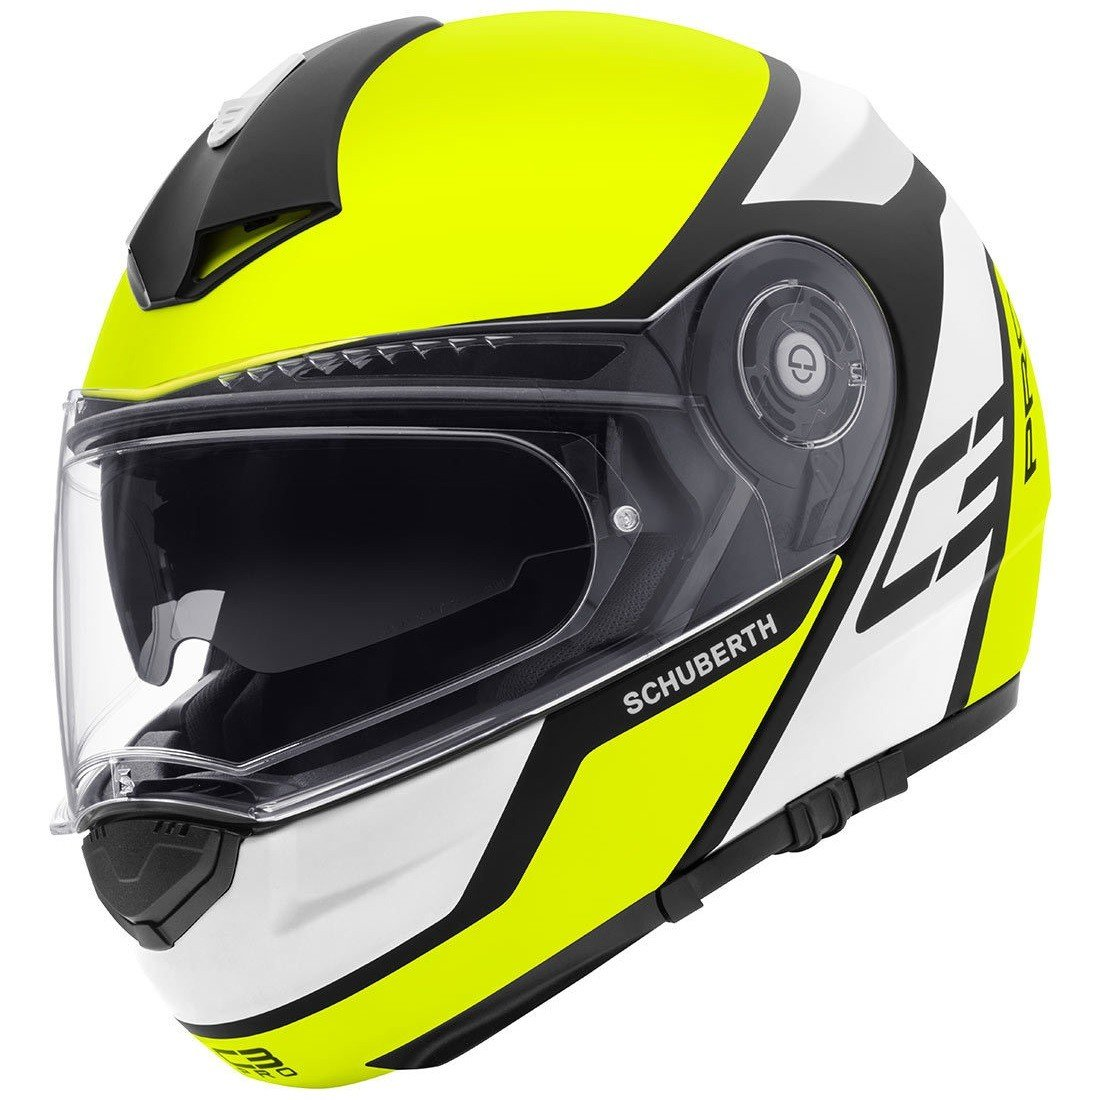 Schuberth C3 Pro Echo yellow XL (60/61)